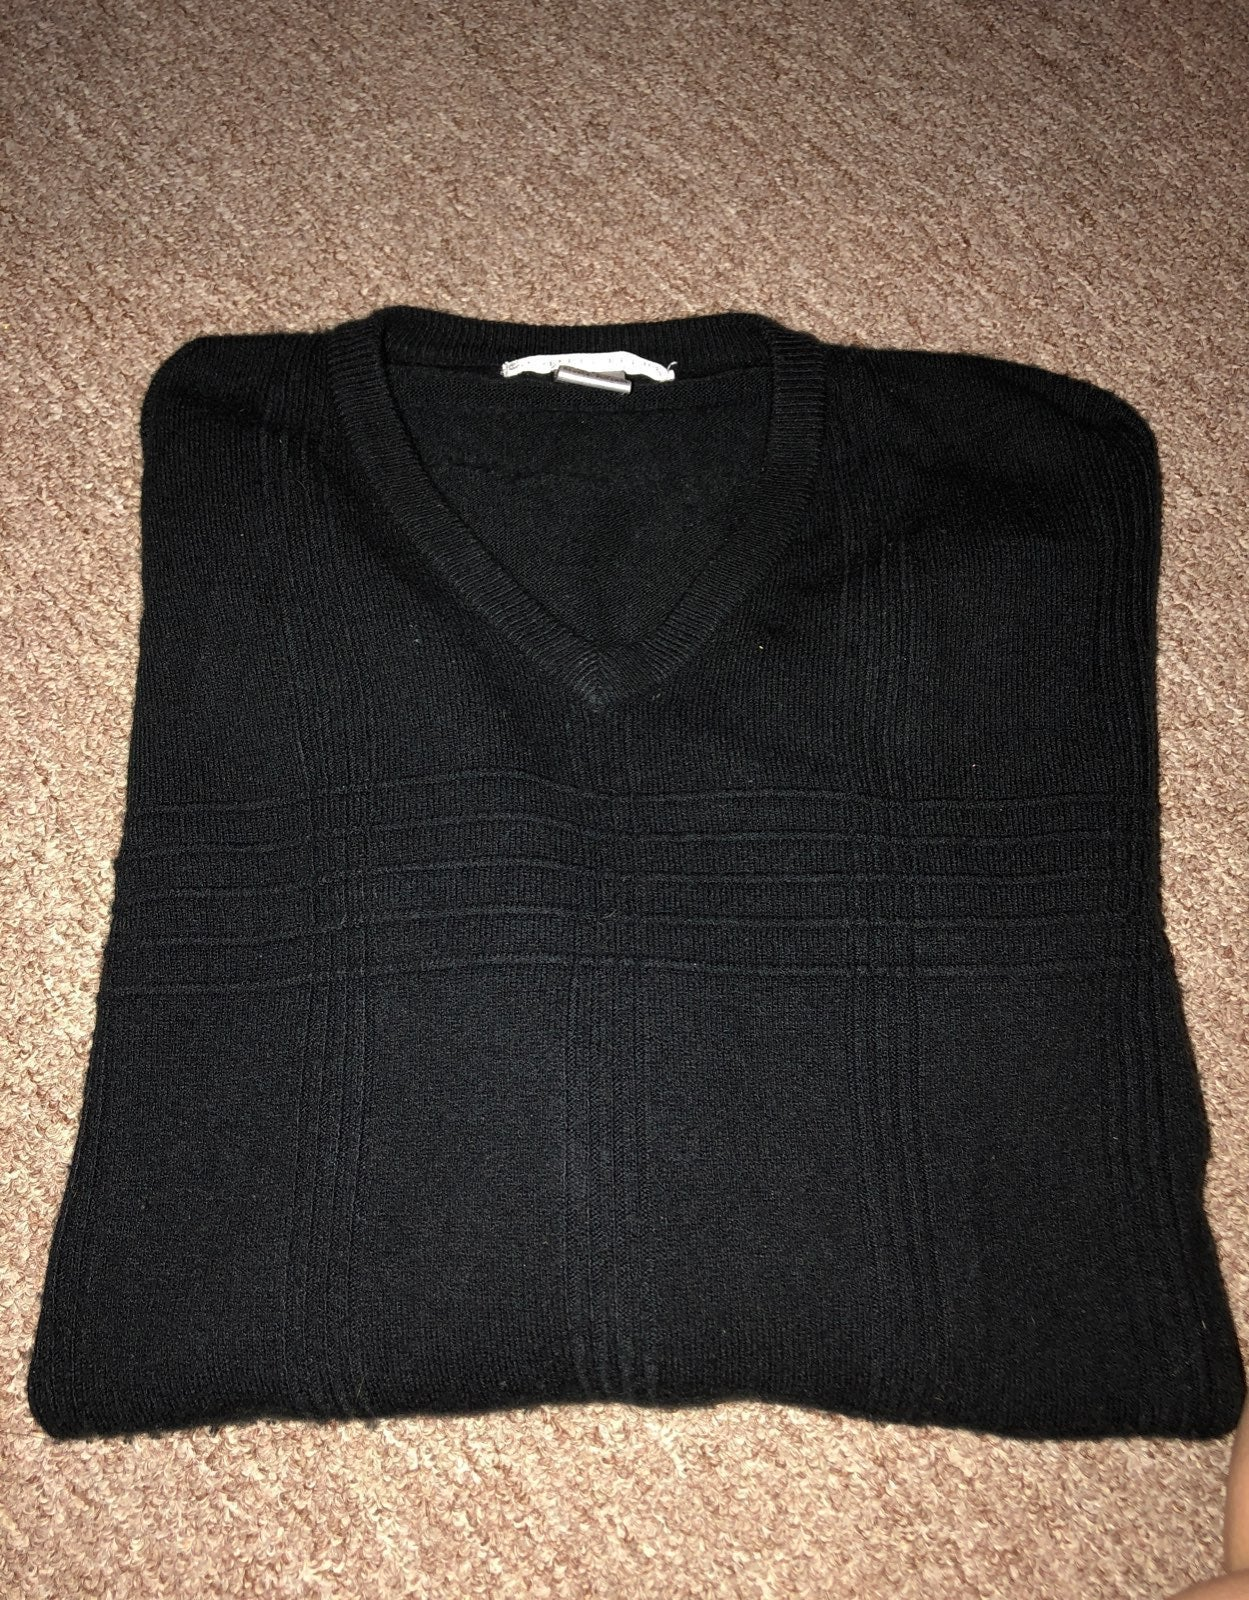 Mens vneck sweater large